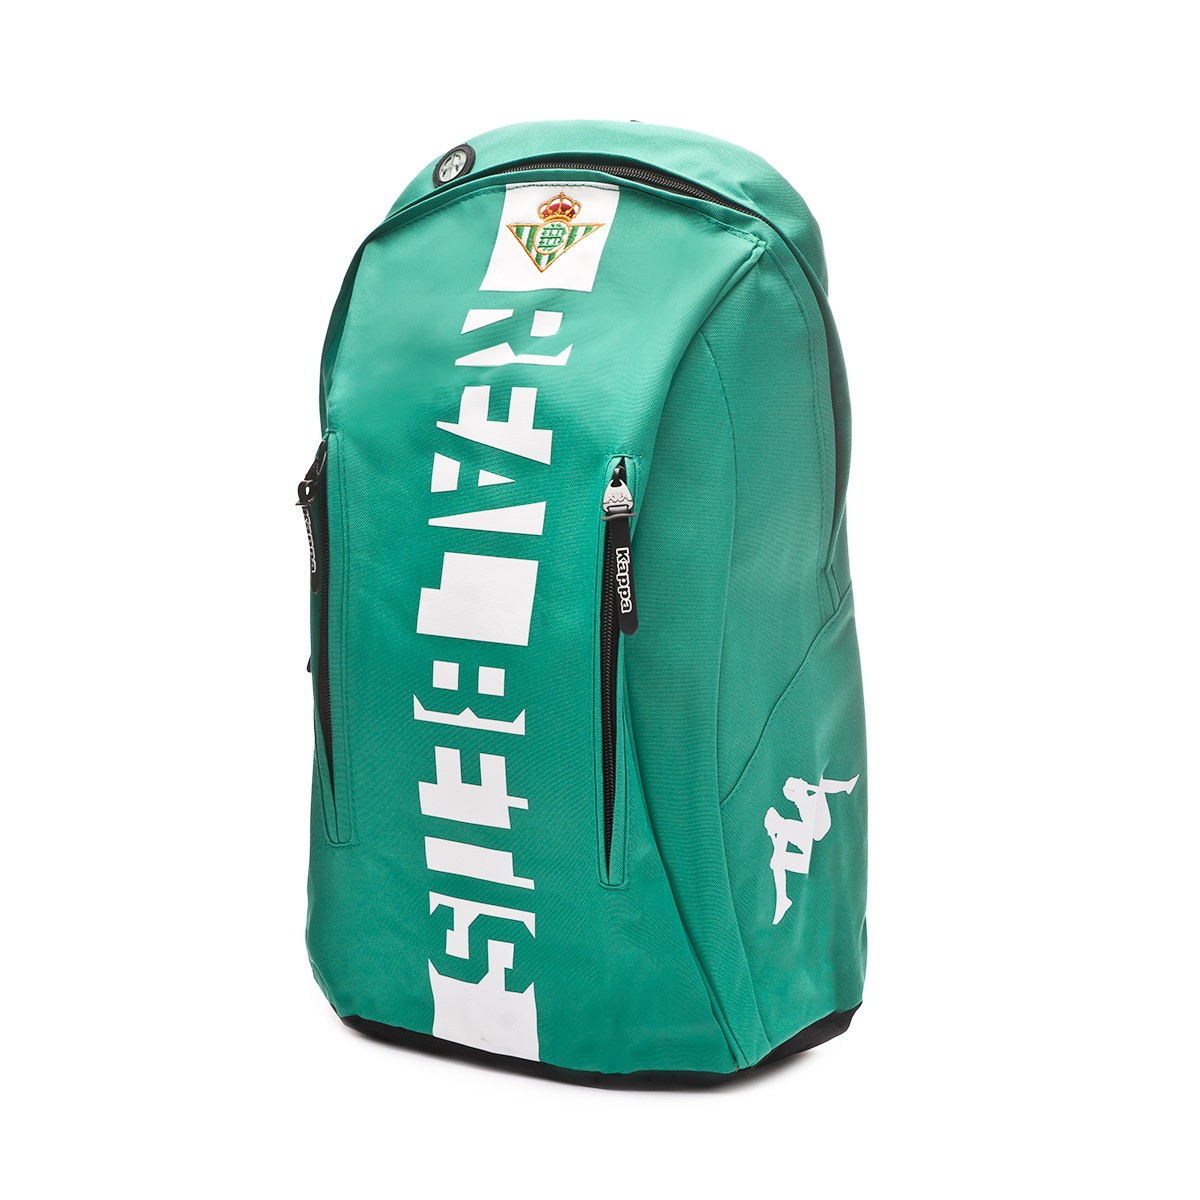 Backpack Kappa Real Betis Balompié 2018-2019 Green - Football store Fútbol  Emotion 56c3d7dcc9f7f